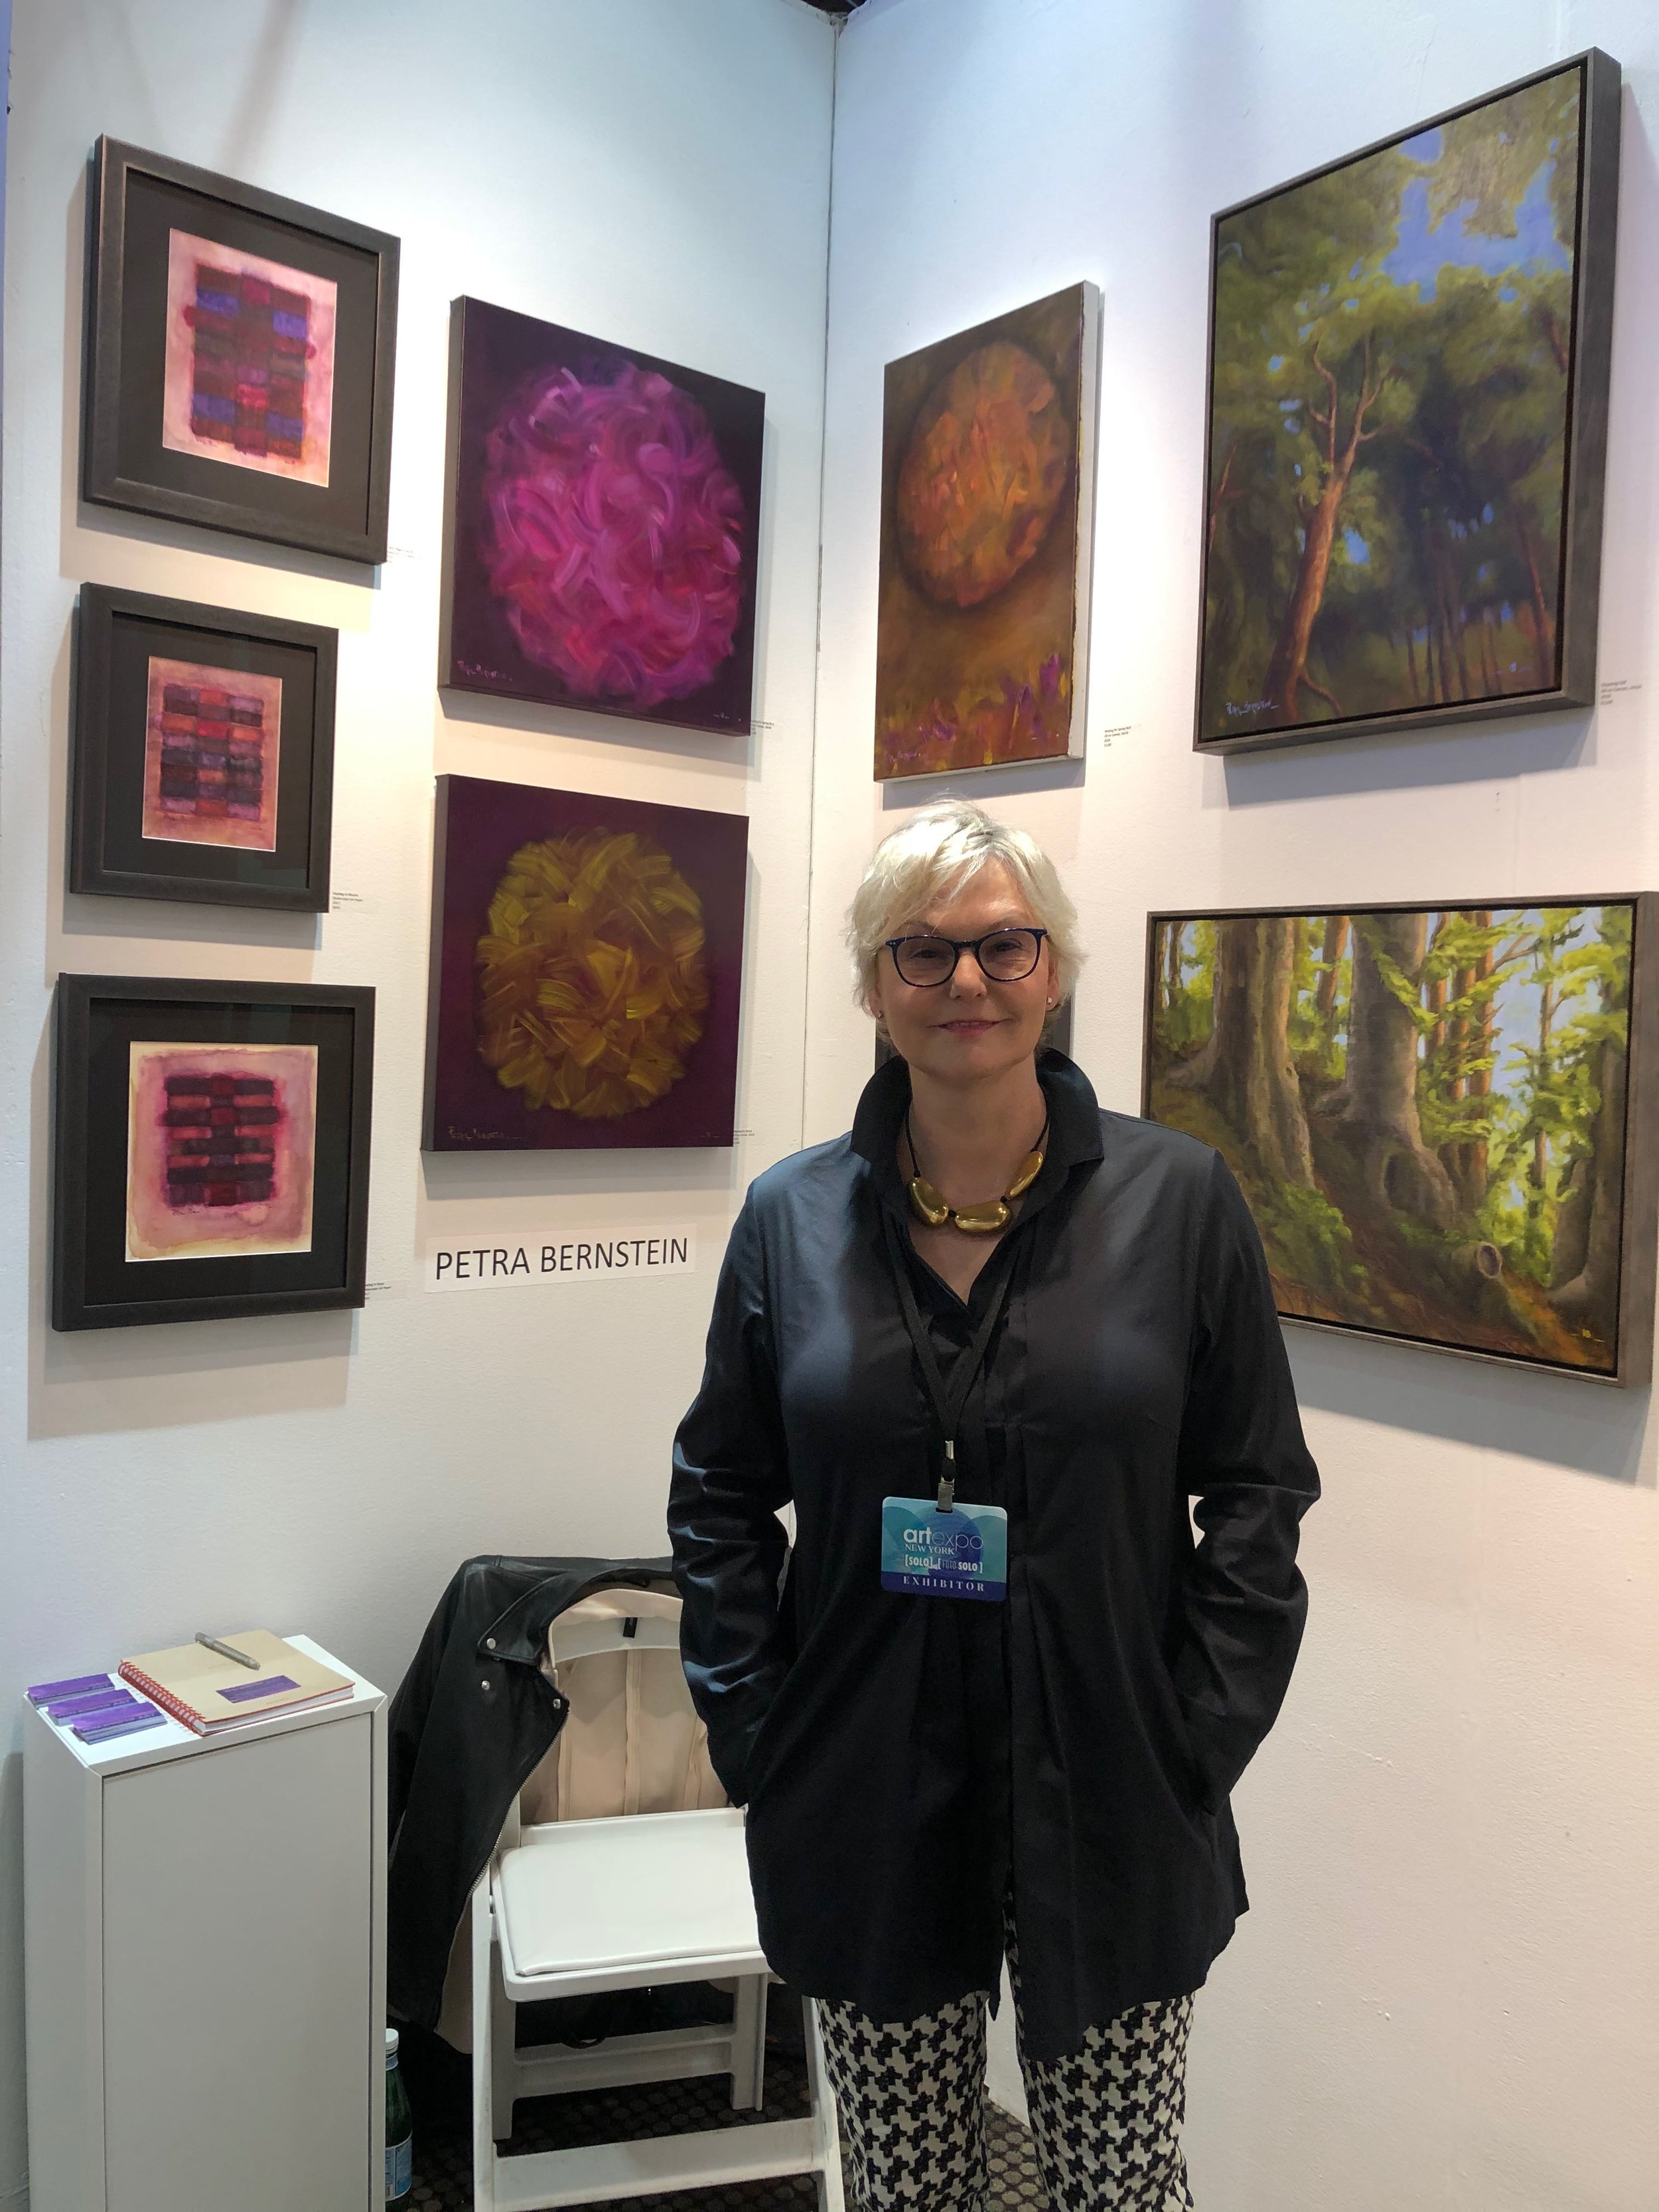 Artexpo New York April 4 till 7th, 2019